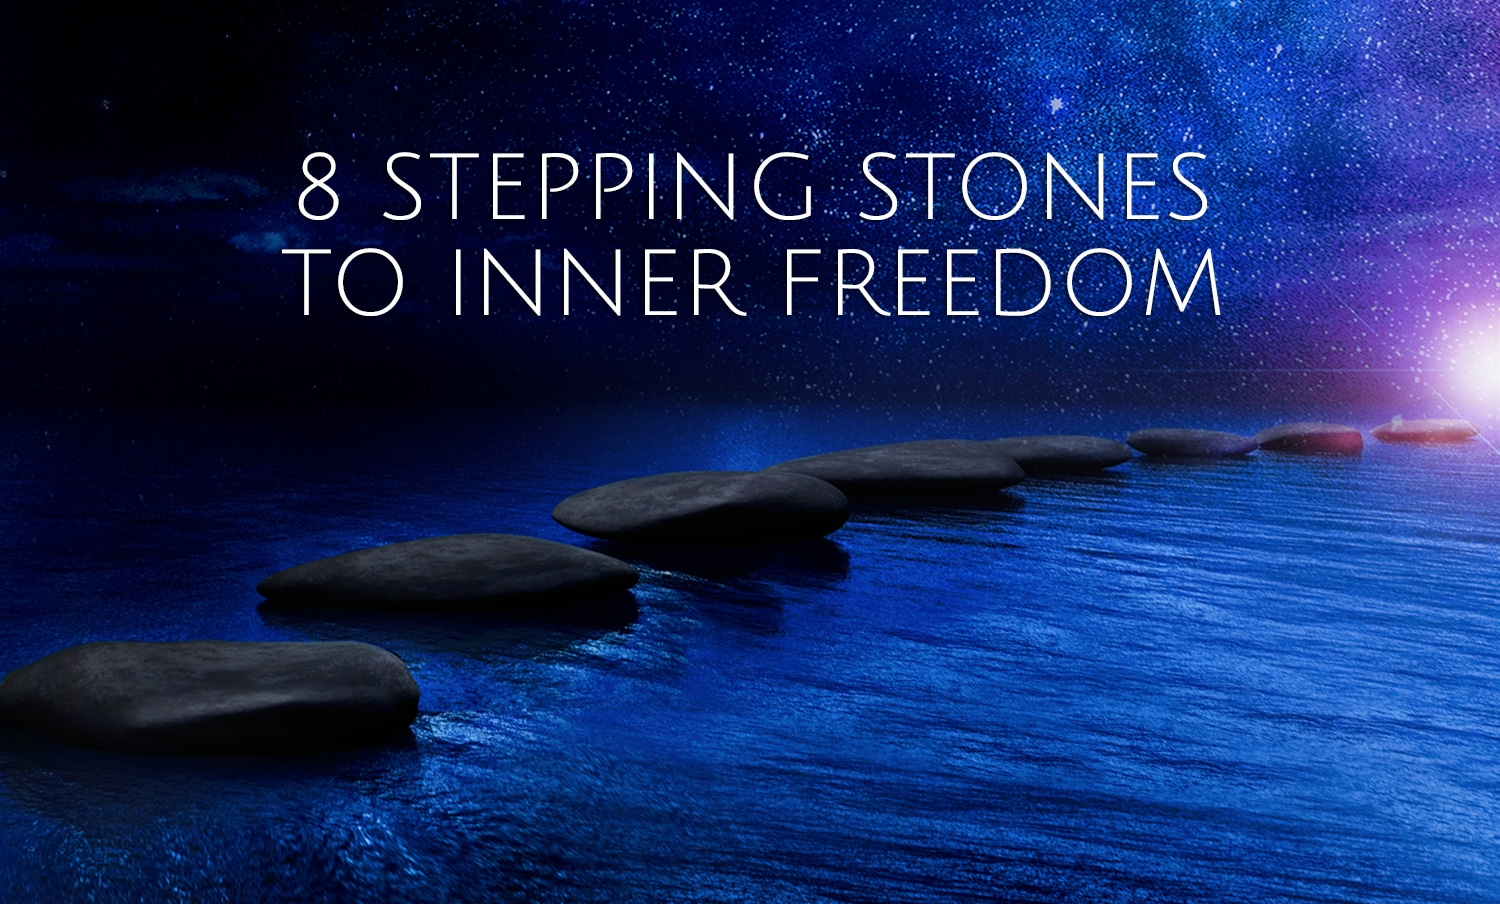 8 Steeping Stones to Inner Freedom